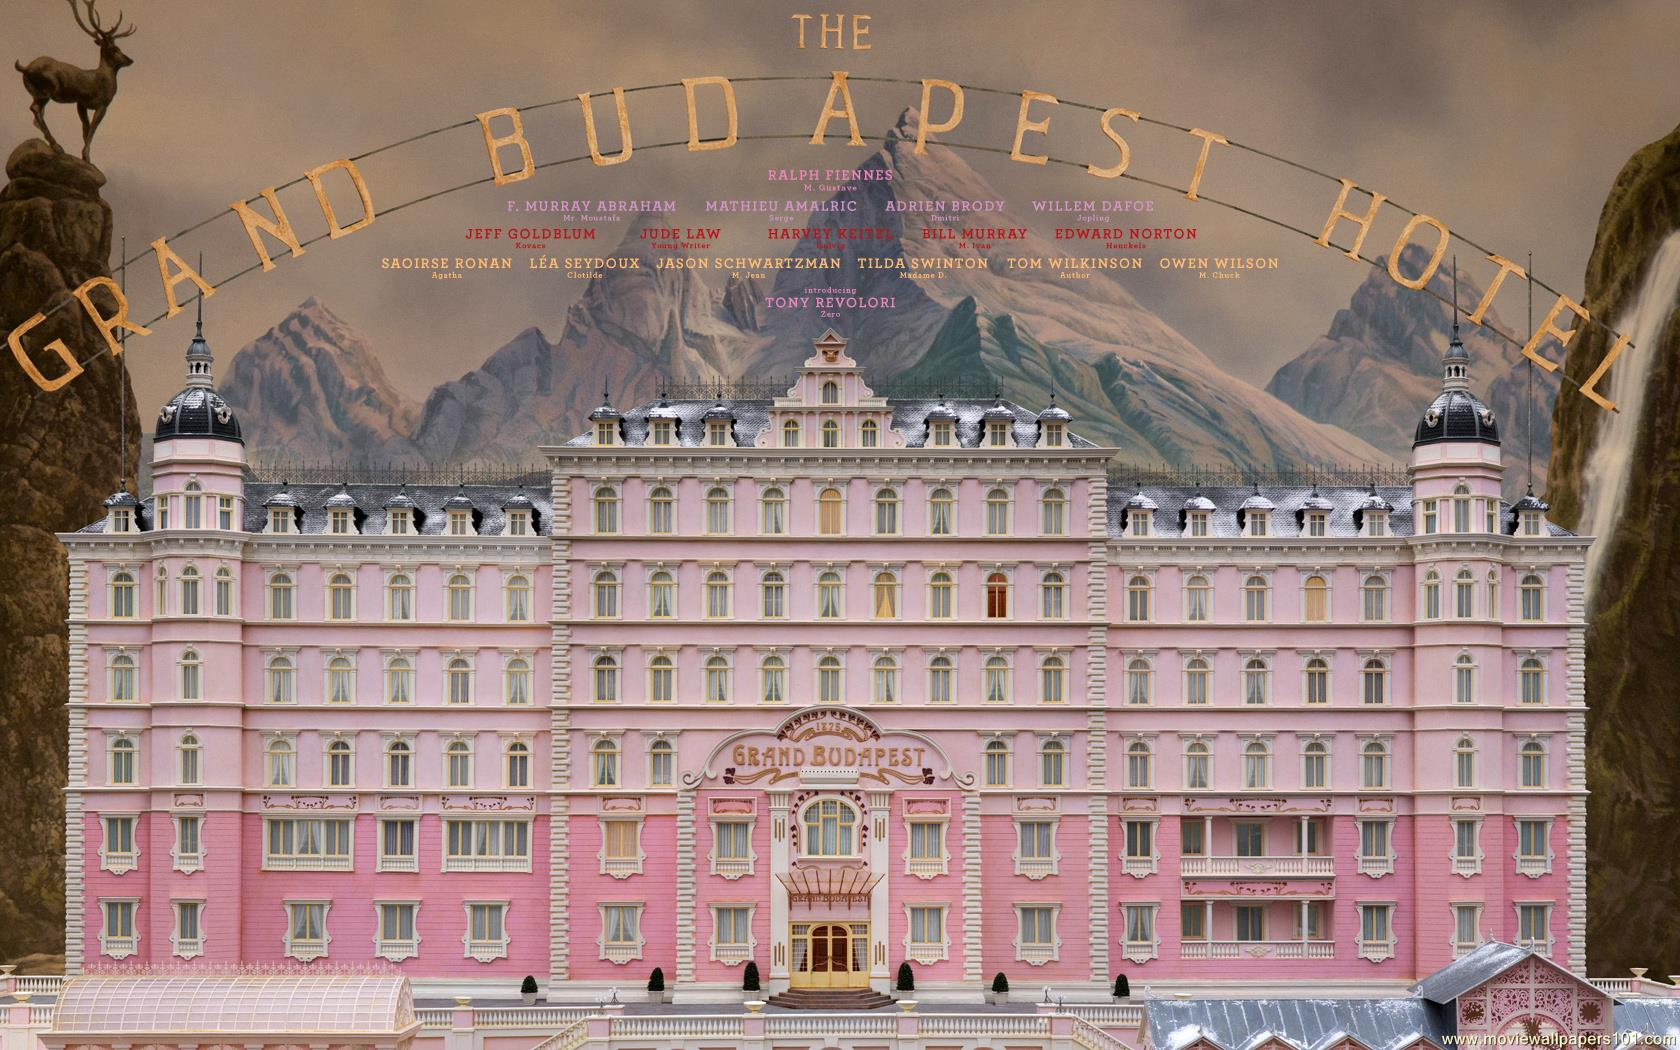 The-Grand-Budapest-Hotel-12101.jpg